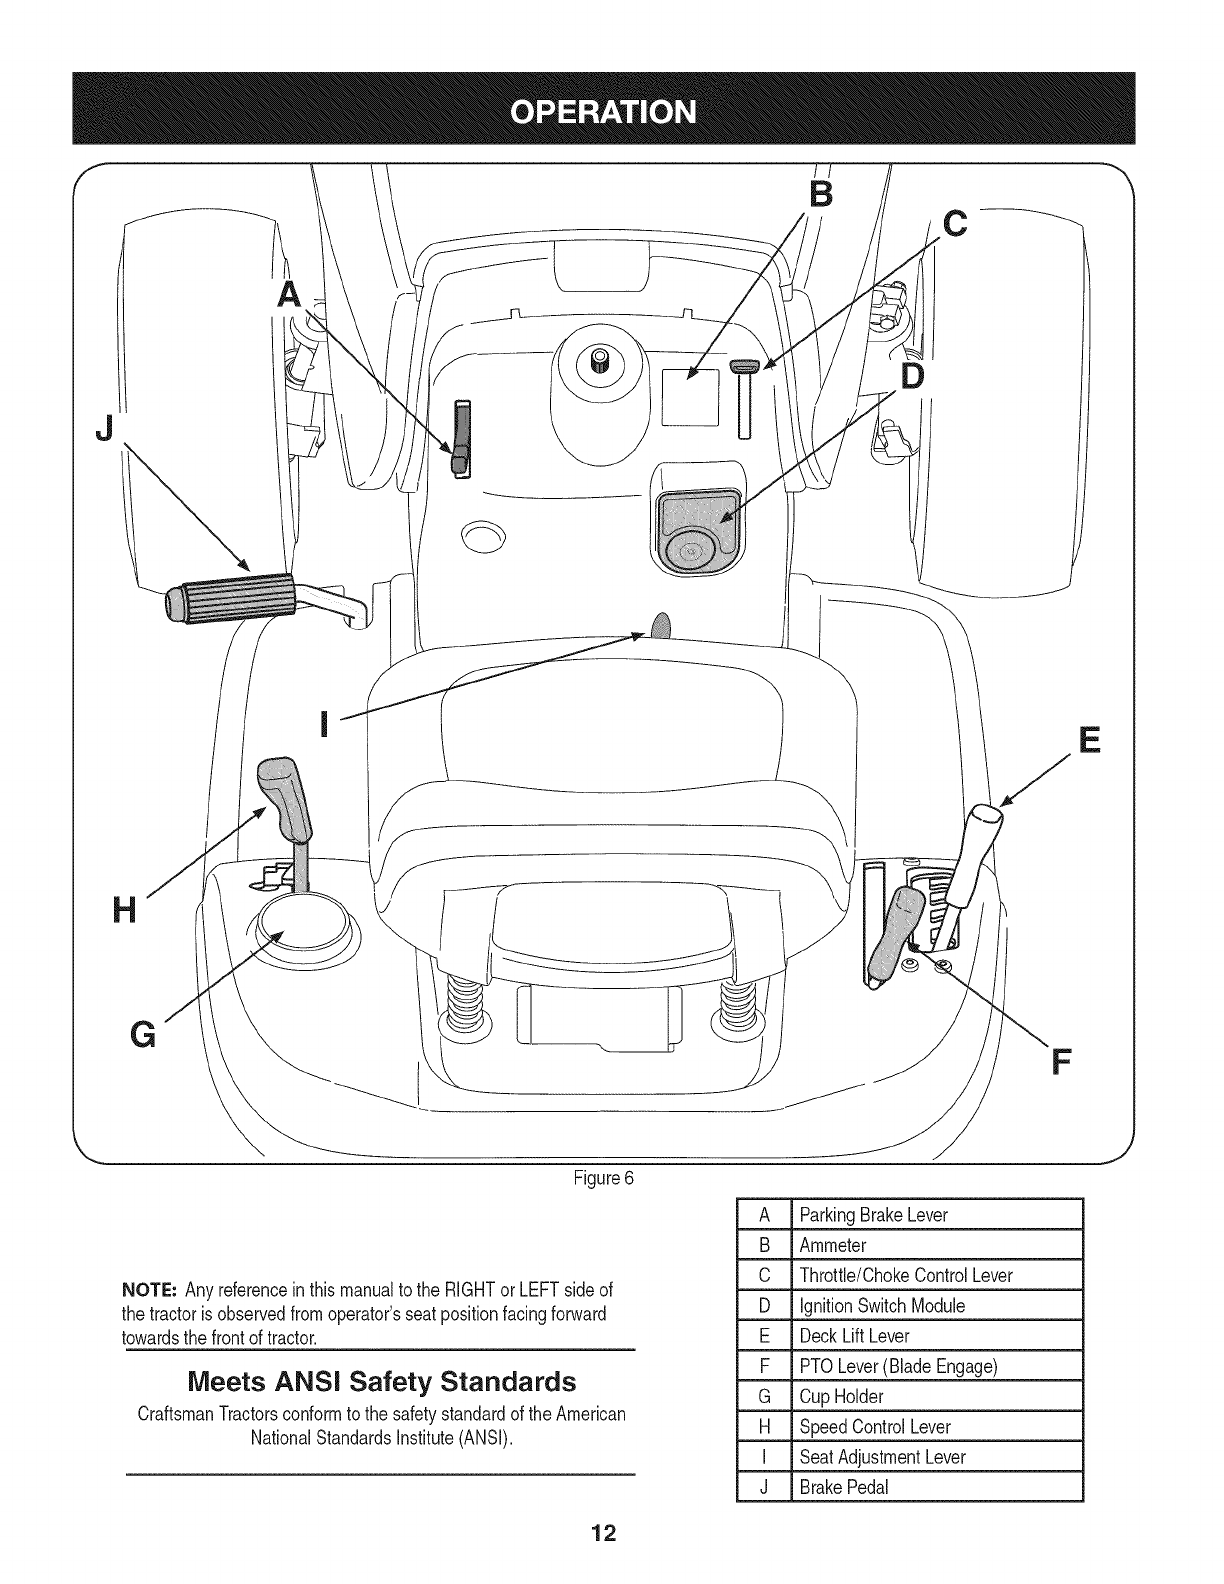 Page 12 of Craftsman Lawn Mower 247.28905 User Guide